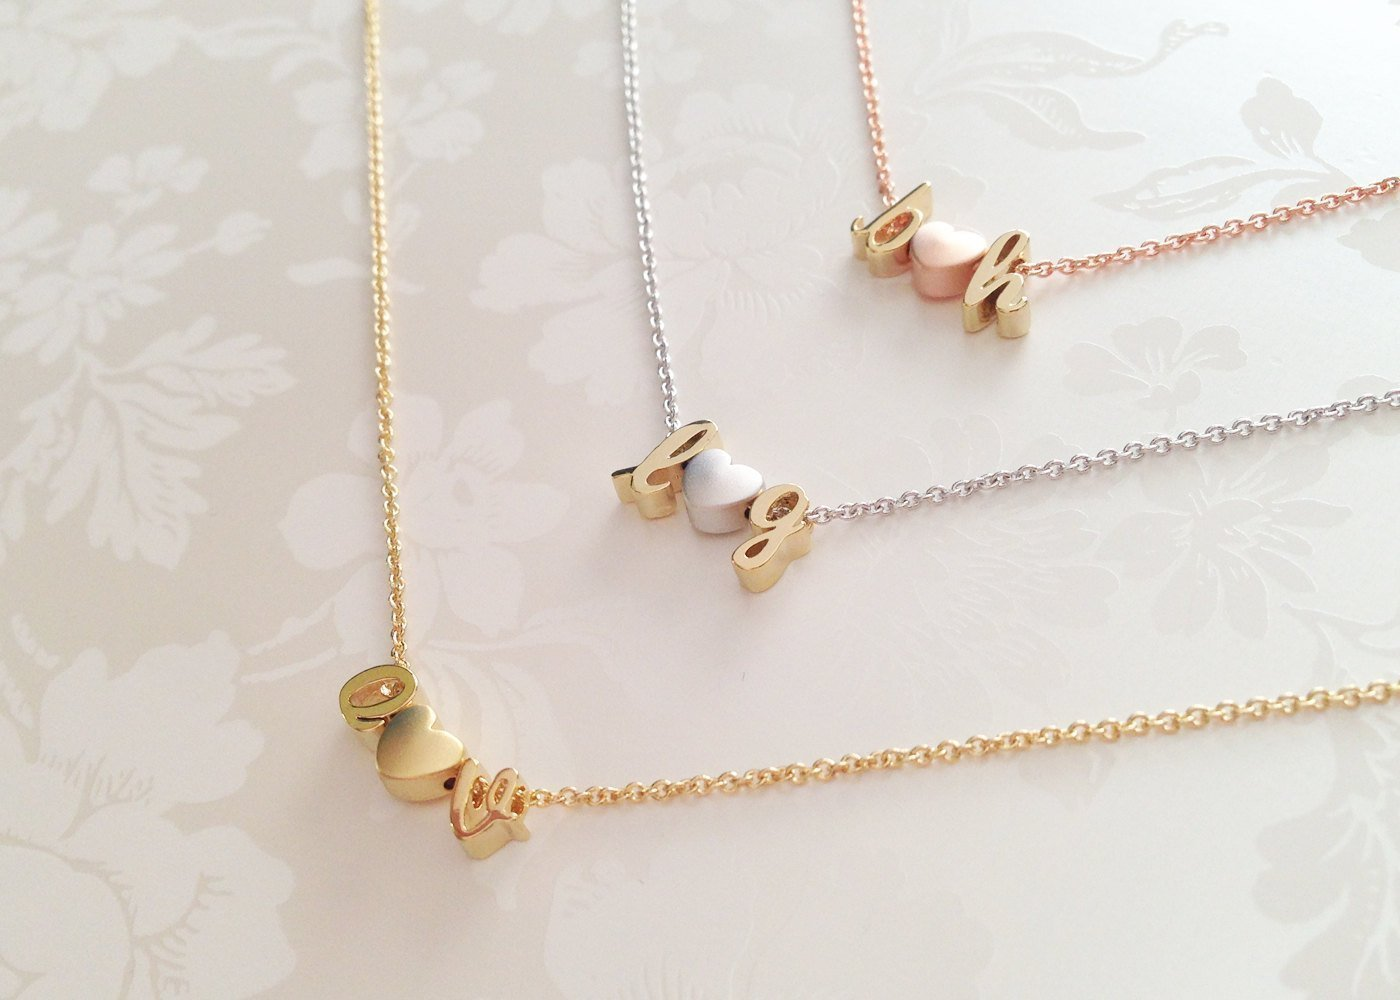 initial clipart wedding innovational chains ideas rose necklace love gift gold heart bridesmaid